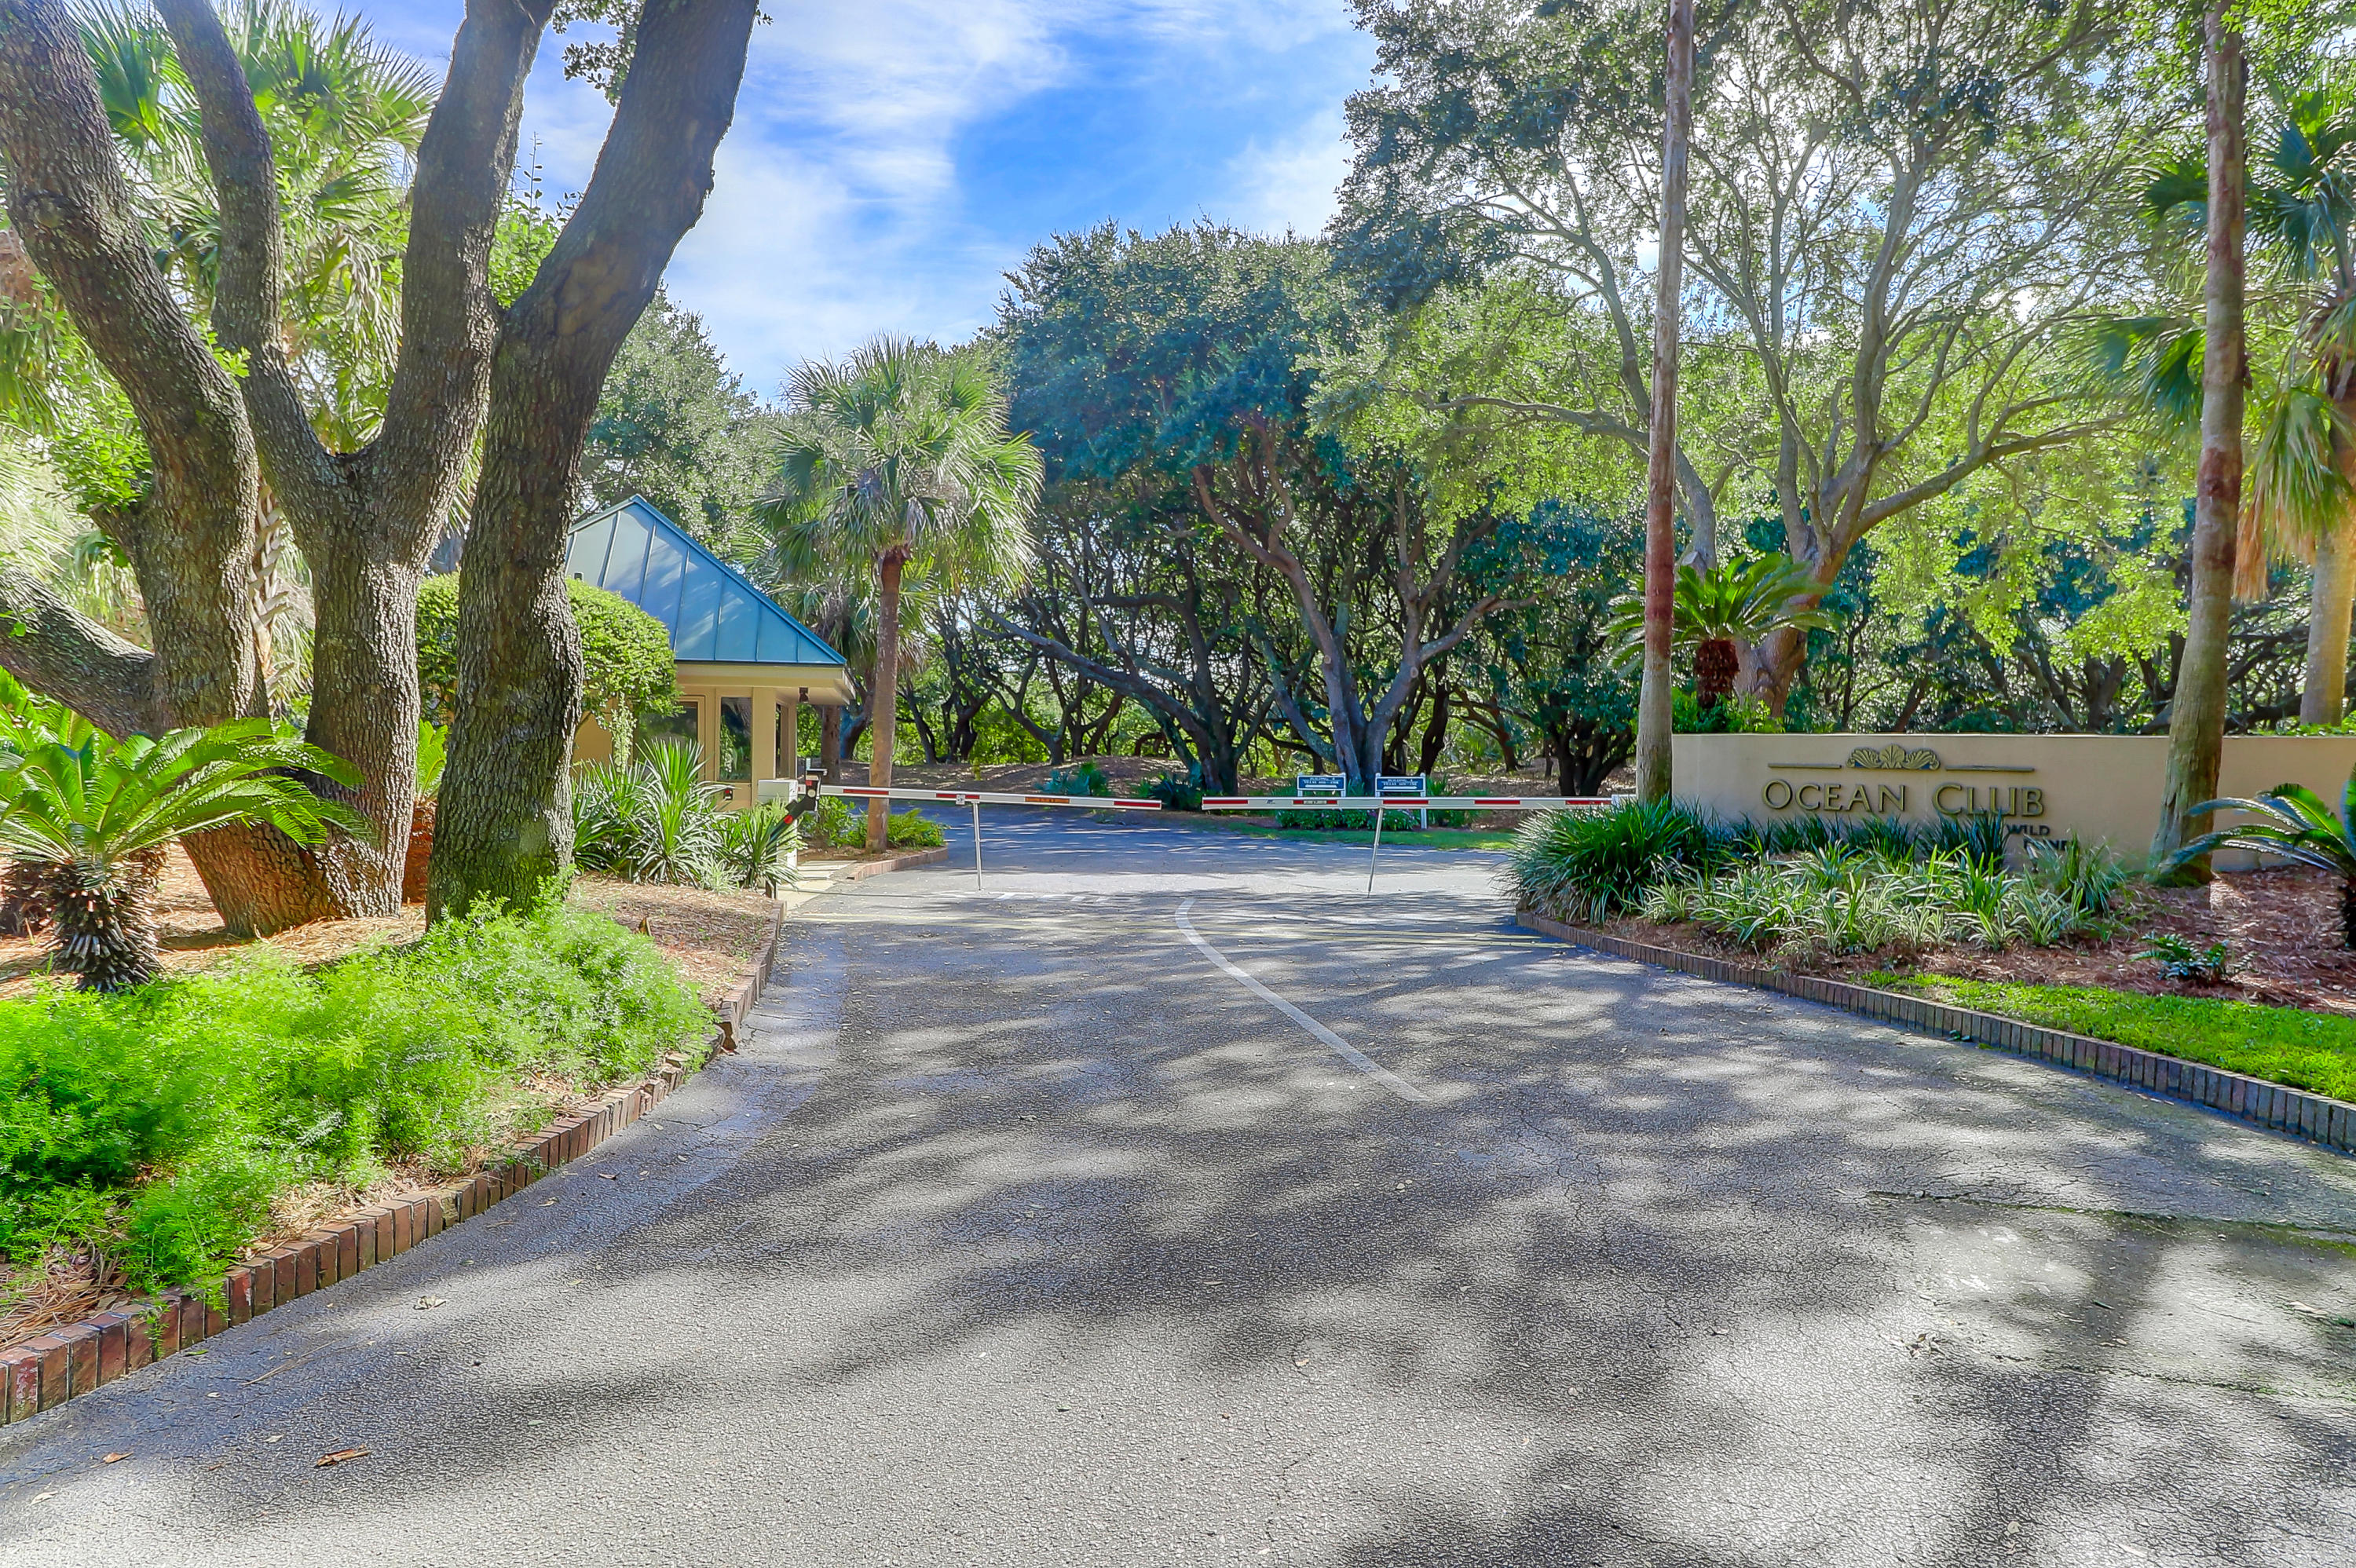 Wild Dunes Homes For Sale - 1105 Ocean Club, Isle of Palms, SC - 1